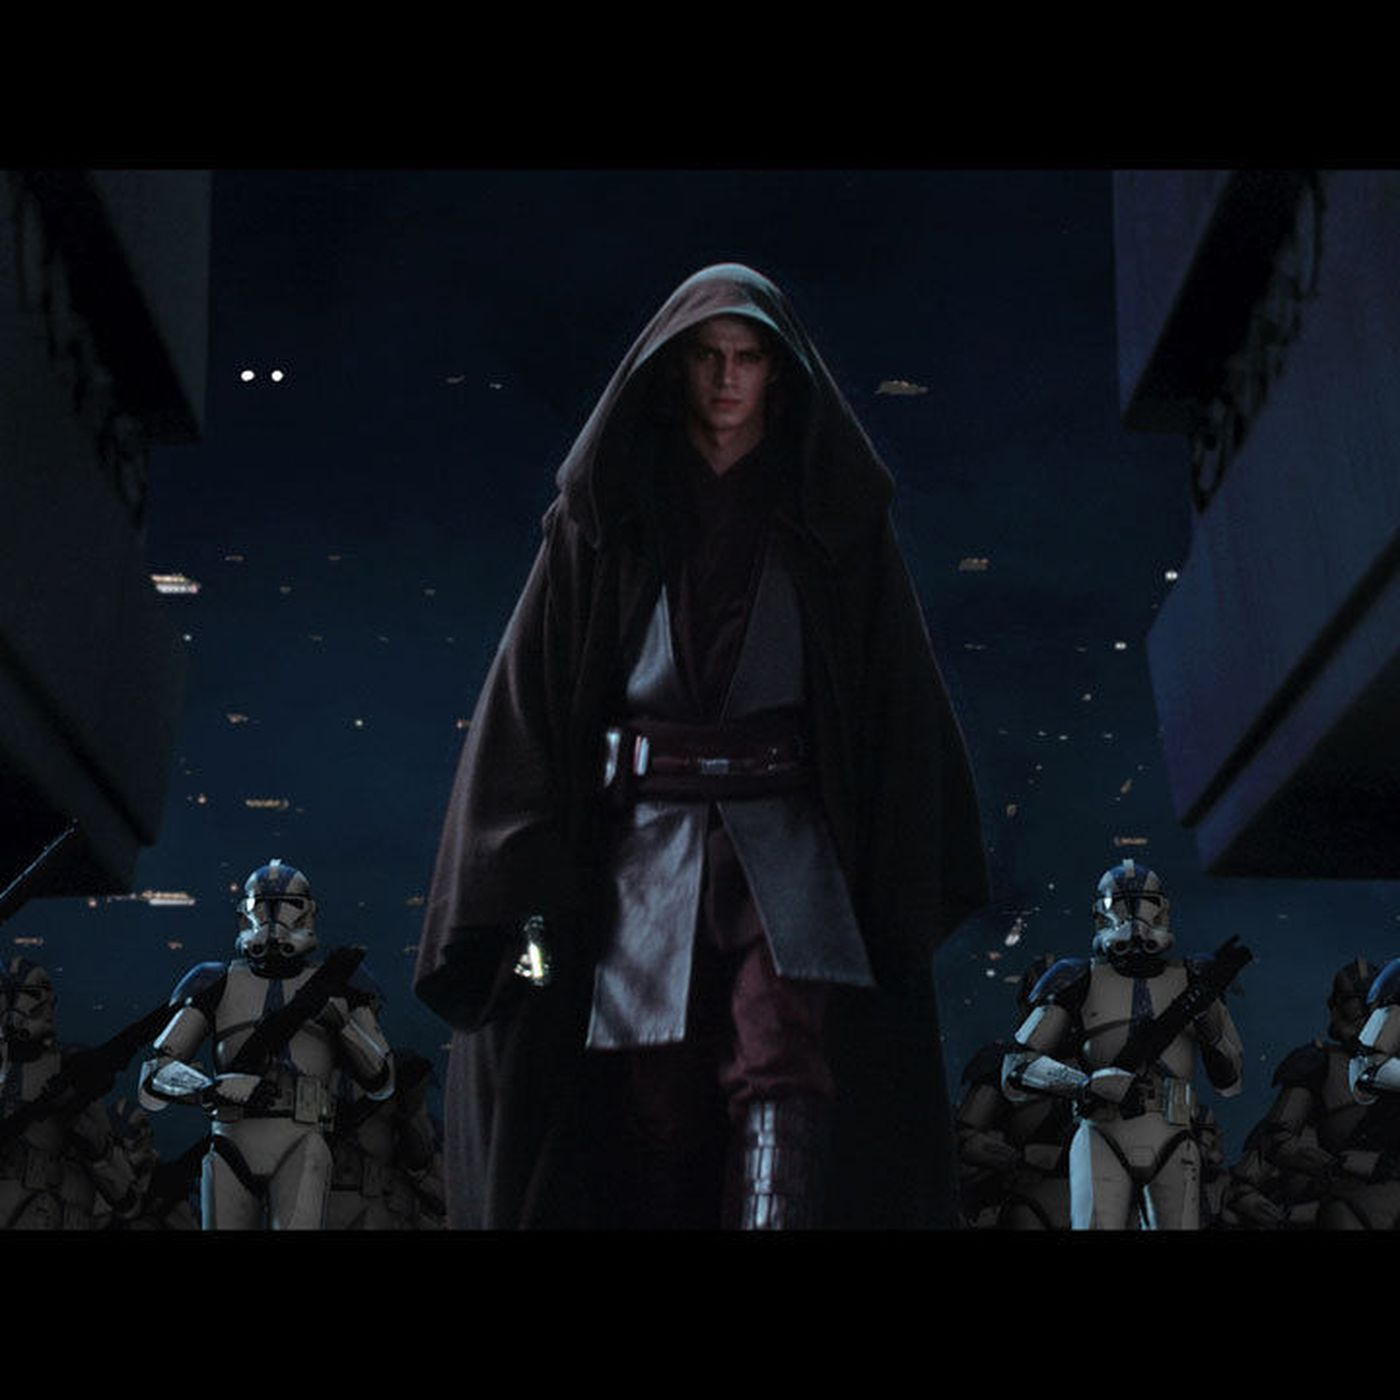 Star Wars Revenge Of The Sith Actually Had An Effect On The Way Lost Ended Polygon